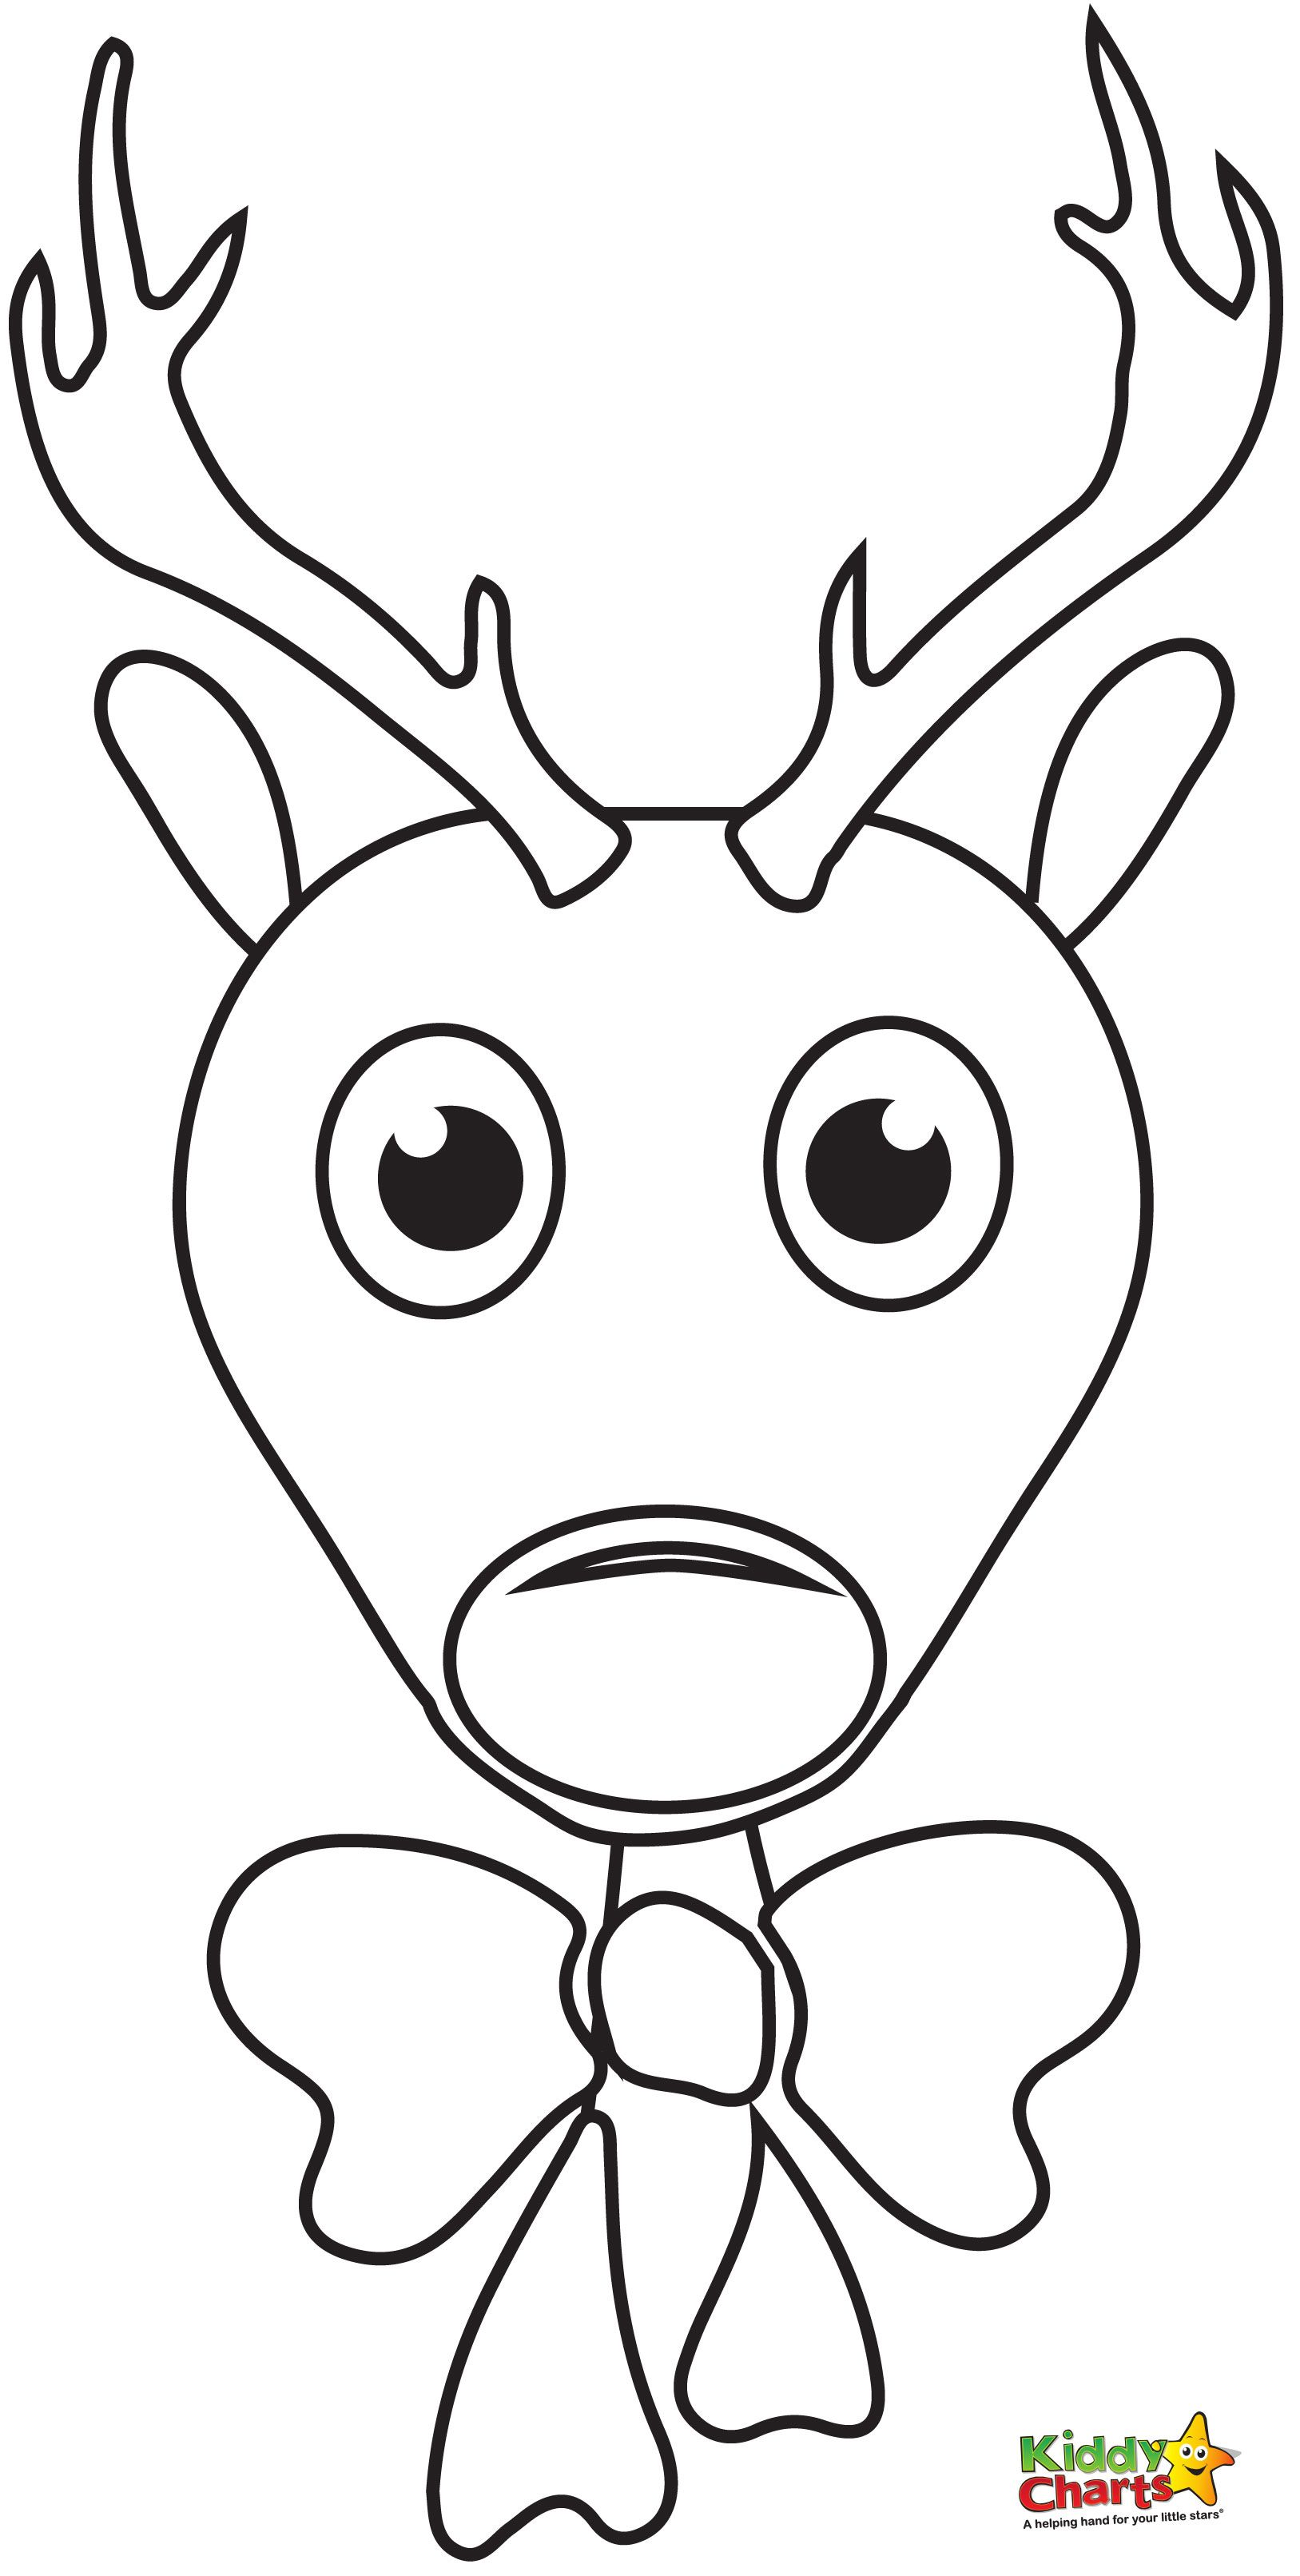 Christmas Rudolph Coloring Pages With Crafts Pinterest Books Craft